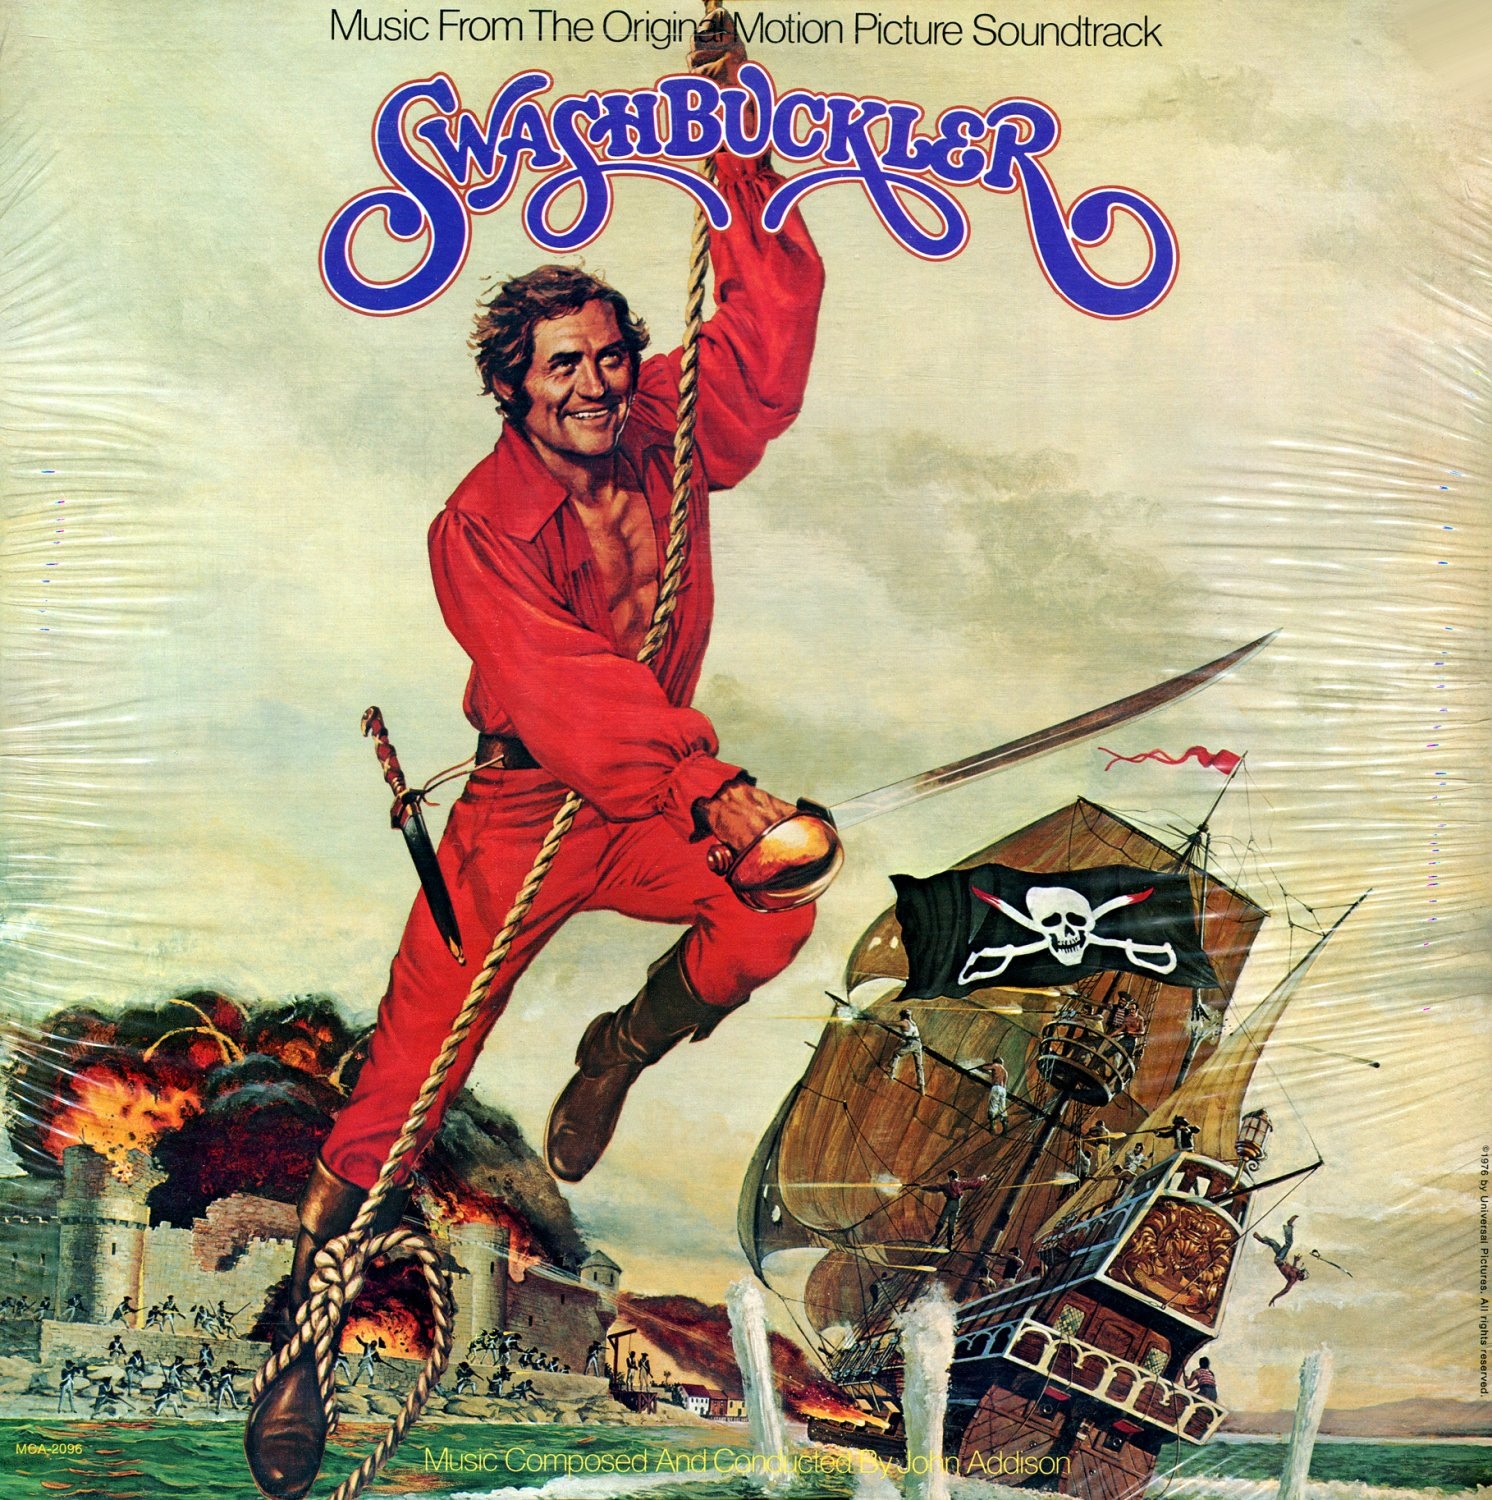 Swashbuckler - Original Soundtrack, John Addison OST LP/CD